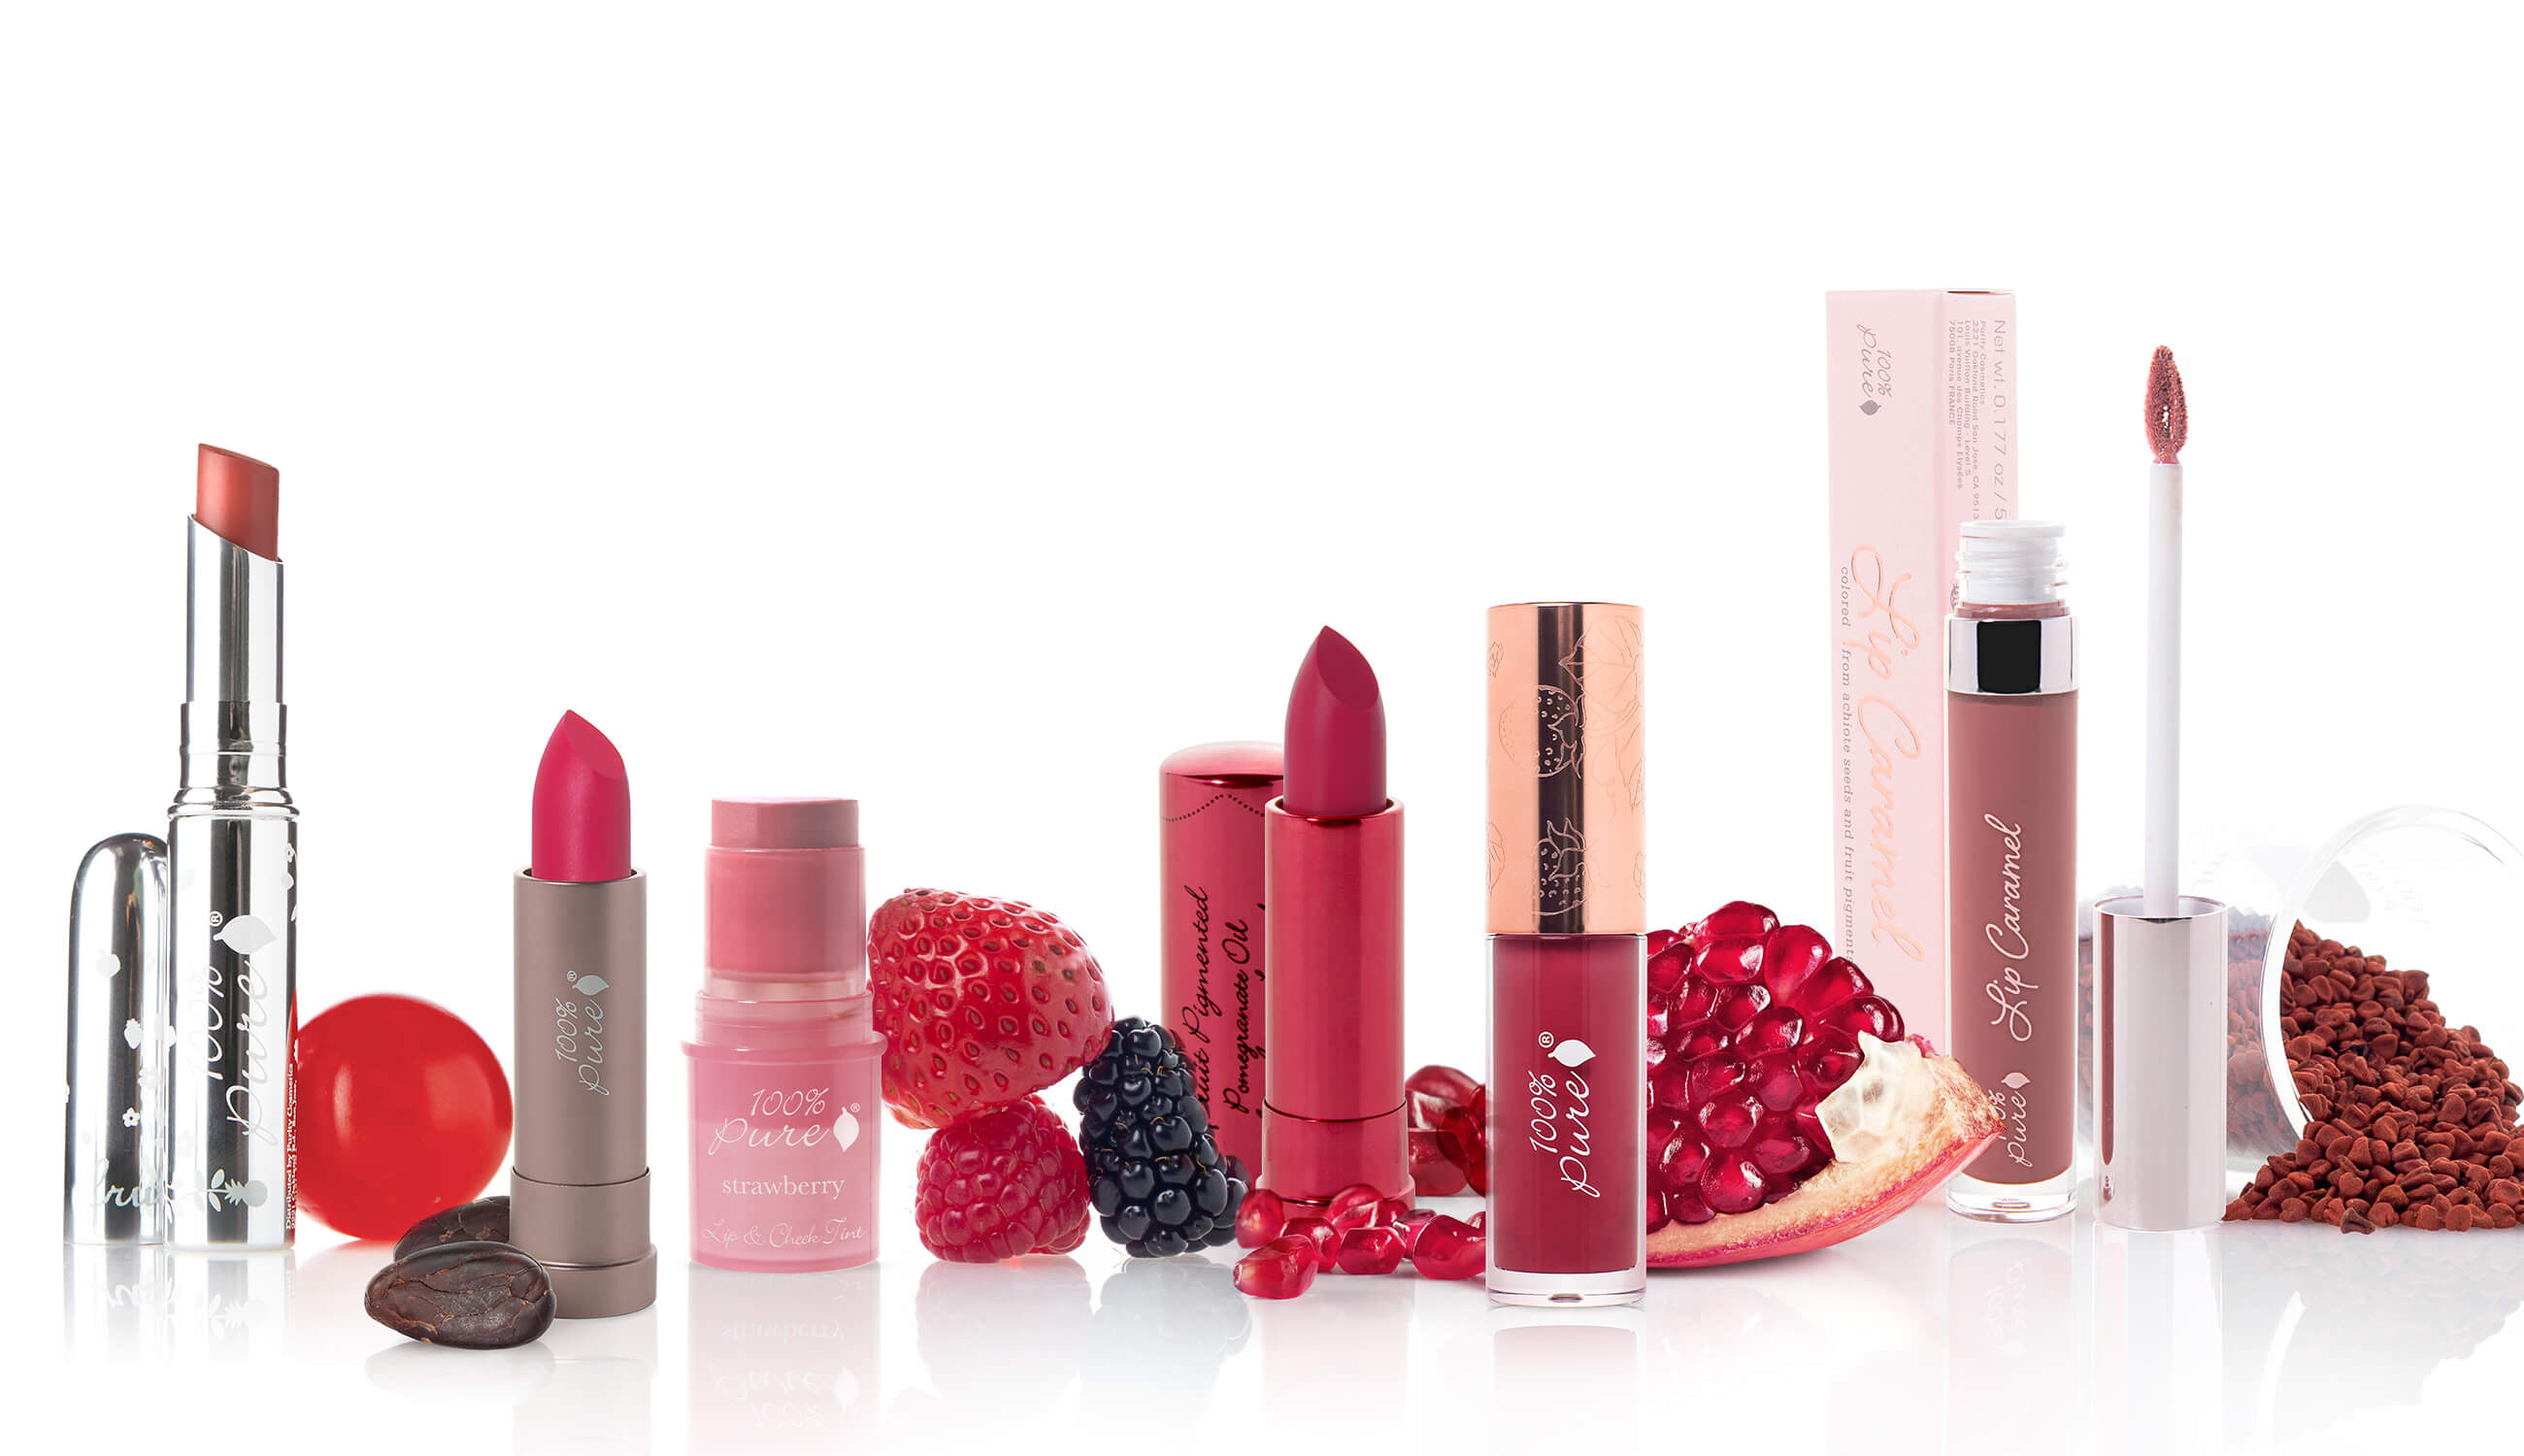 Lipstick image with fruits